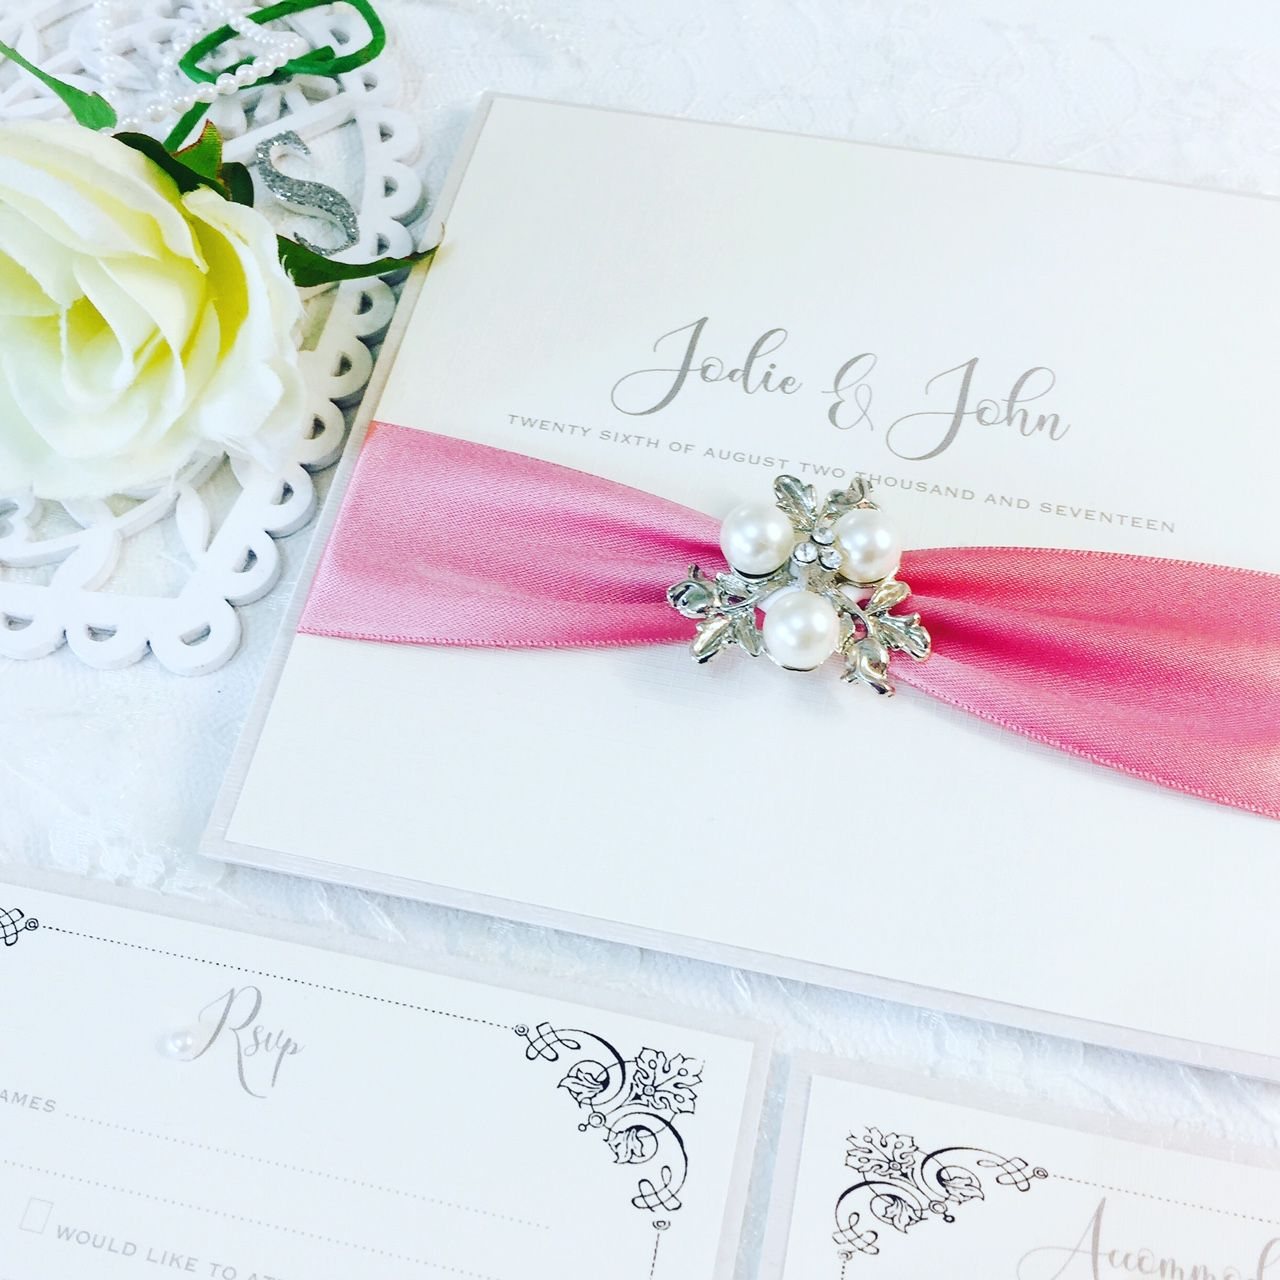 Boxed vintage style wedding invitations with ribbon and brooch